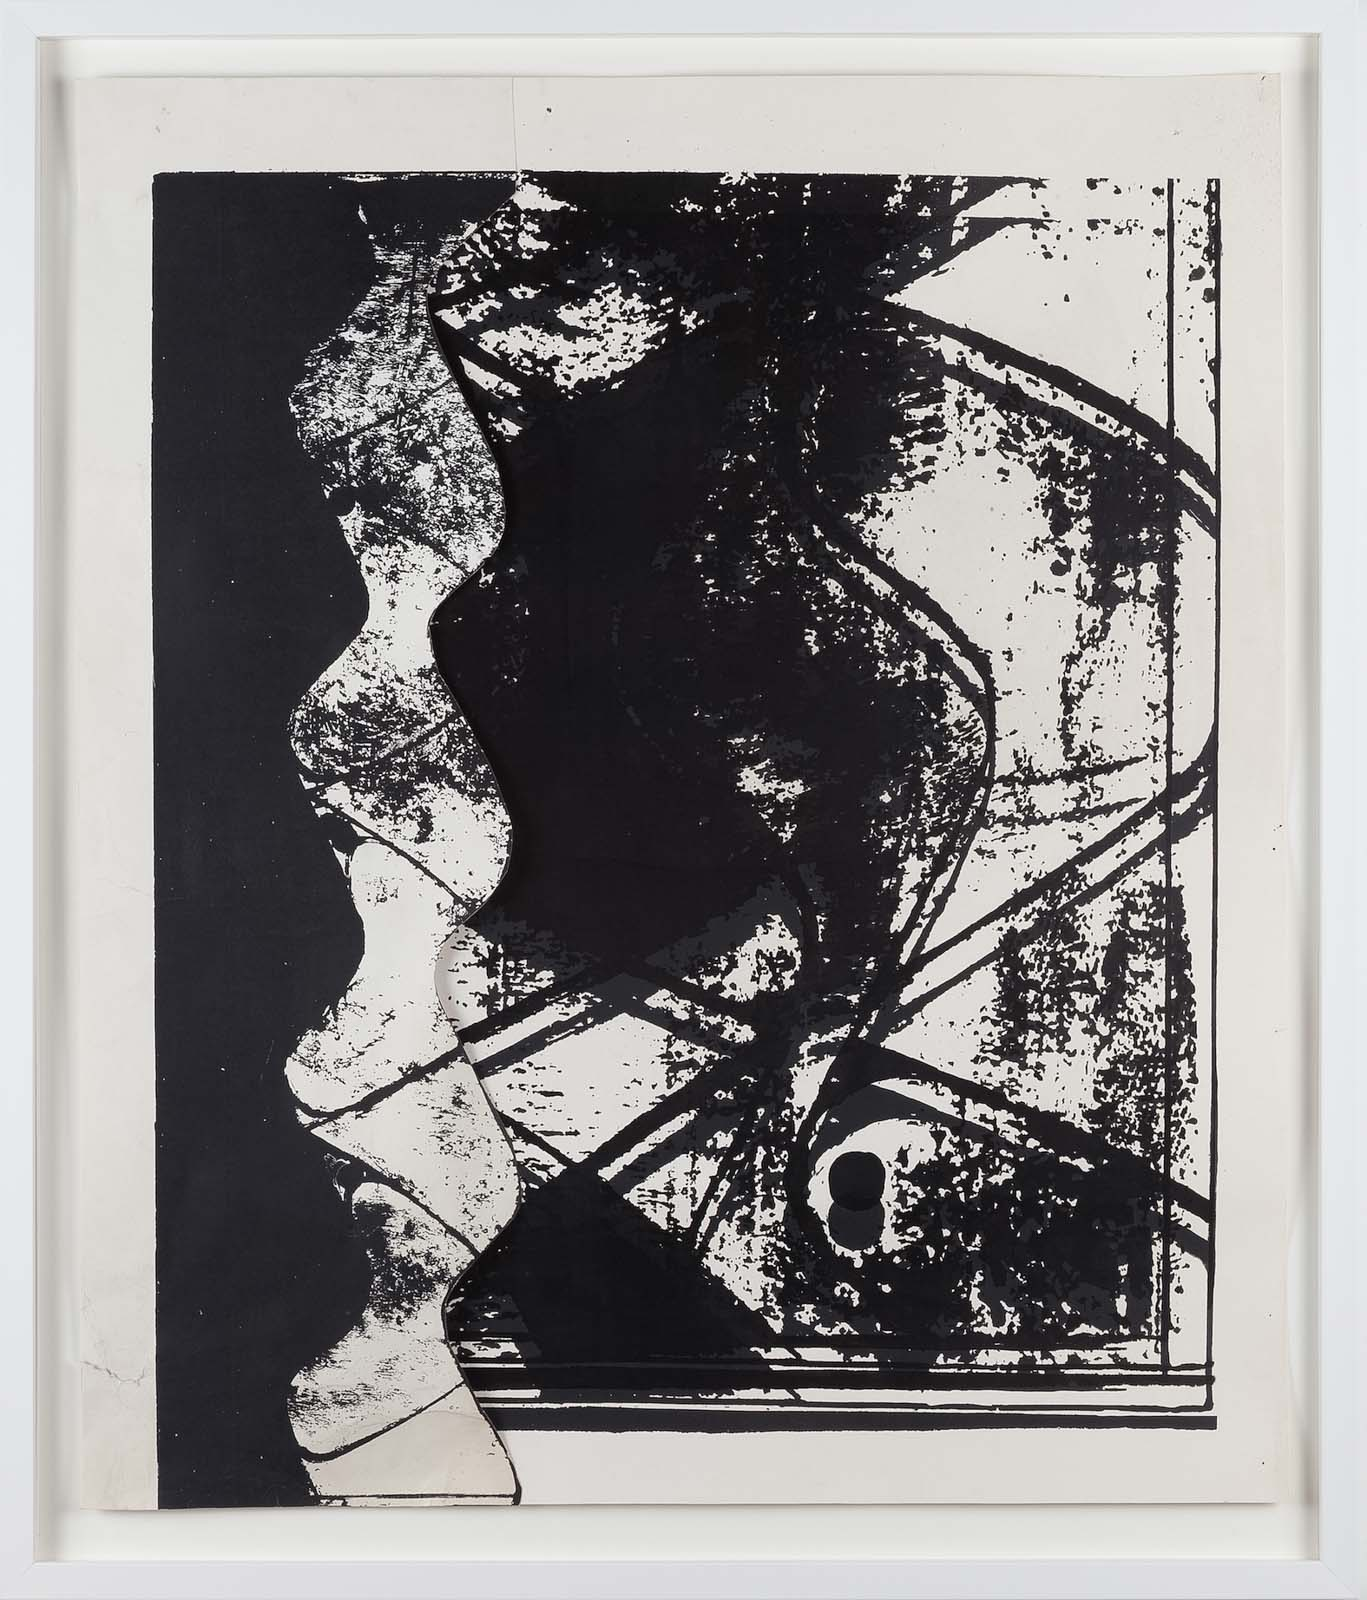 Siri Aurdal, Action – Reaction, B, early 1970s, Silkscreen and collage, 85 x 71 cm, Unique